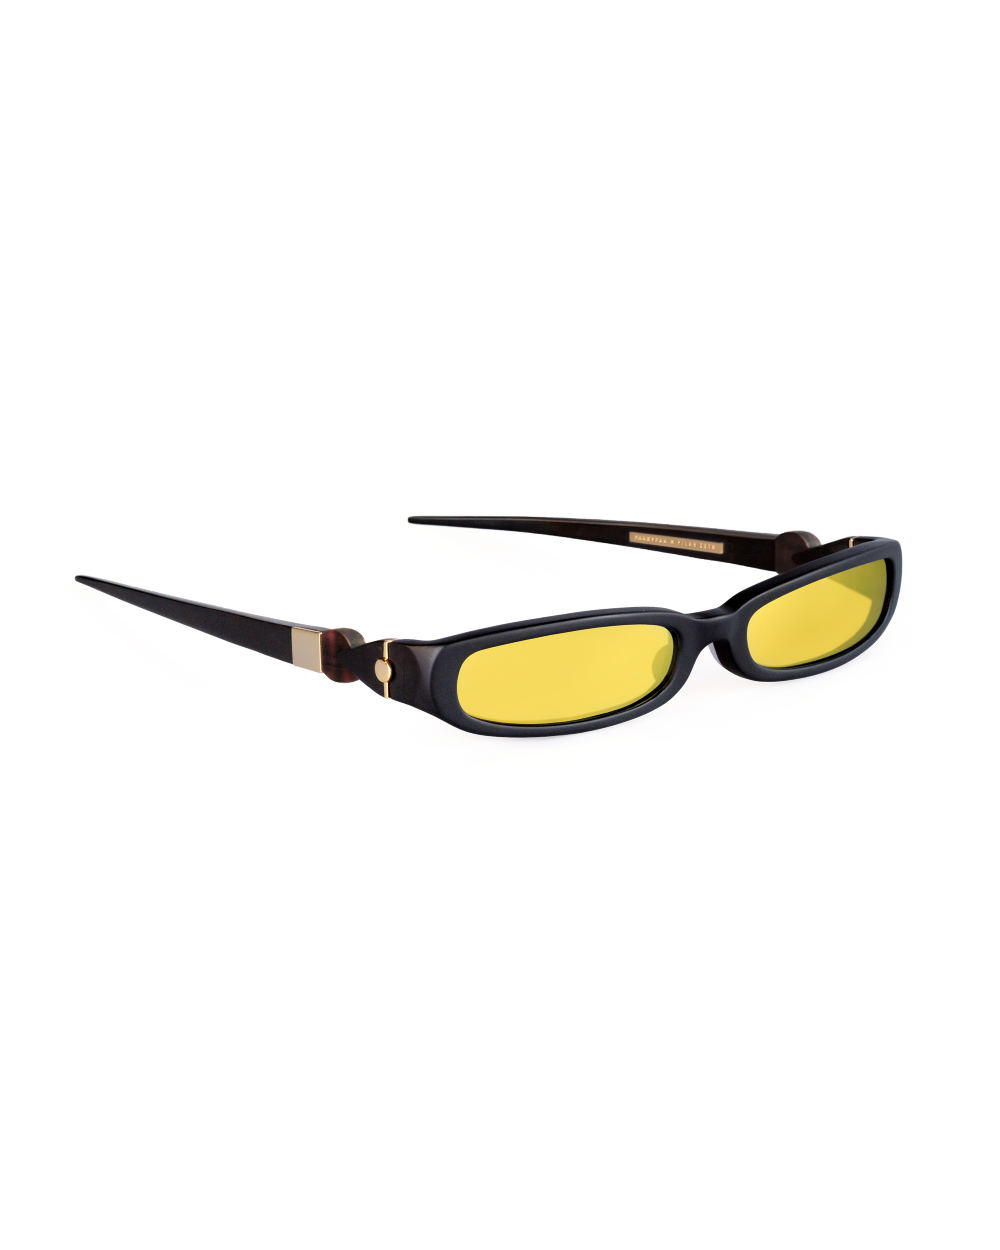 GRACE. Sunglasses. Matte Black & Gold